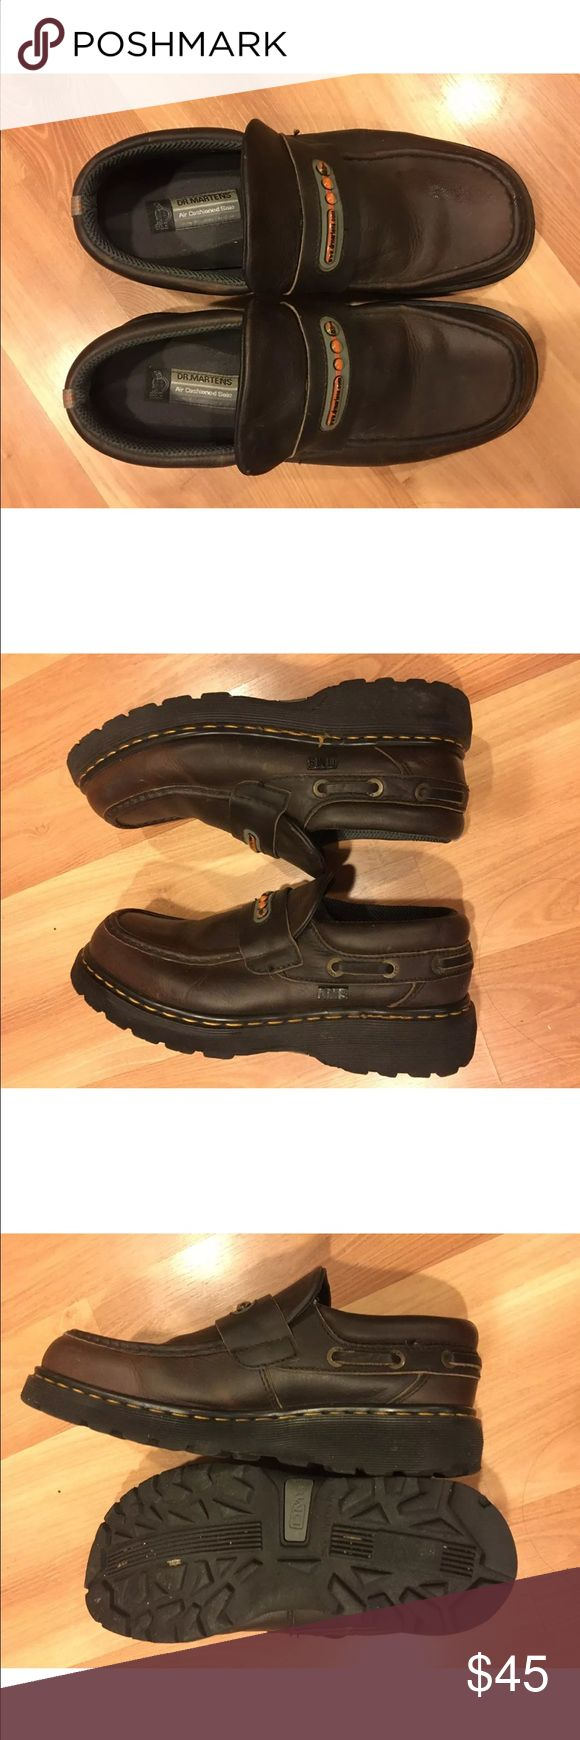 25 best ideas about doc martens on